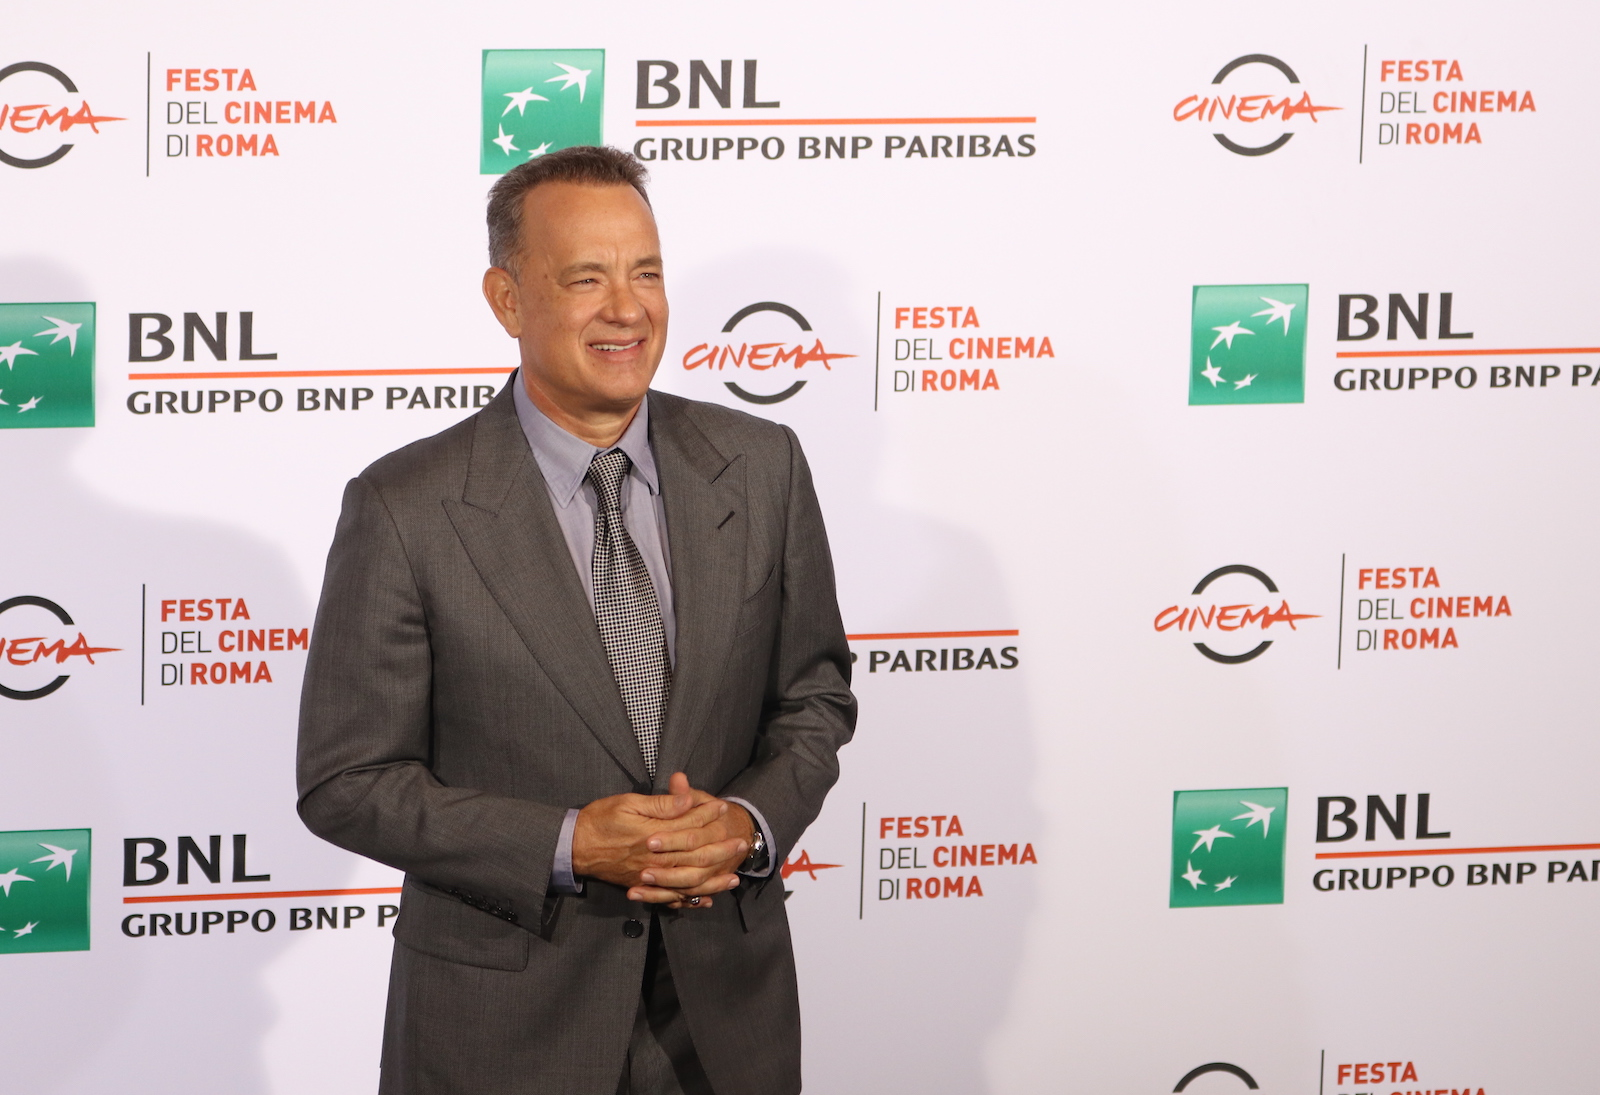 Roma 2016: uno scatto di Tom Hanks al photocall